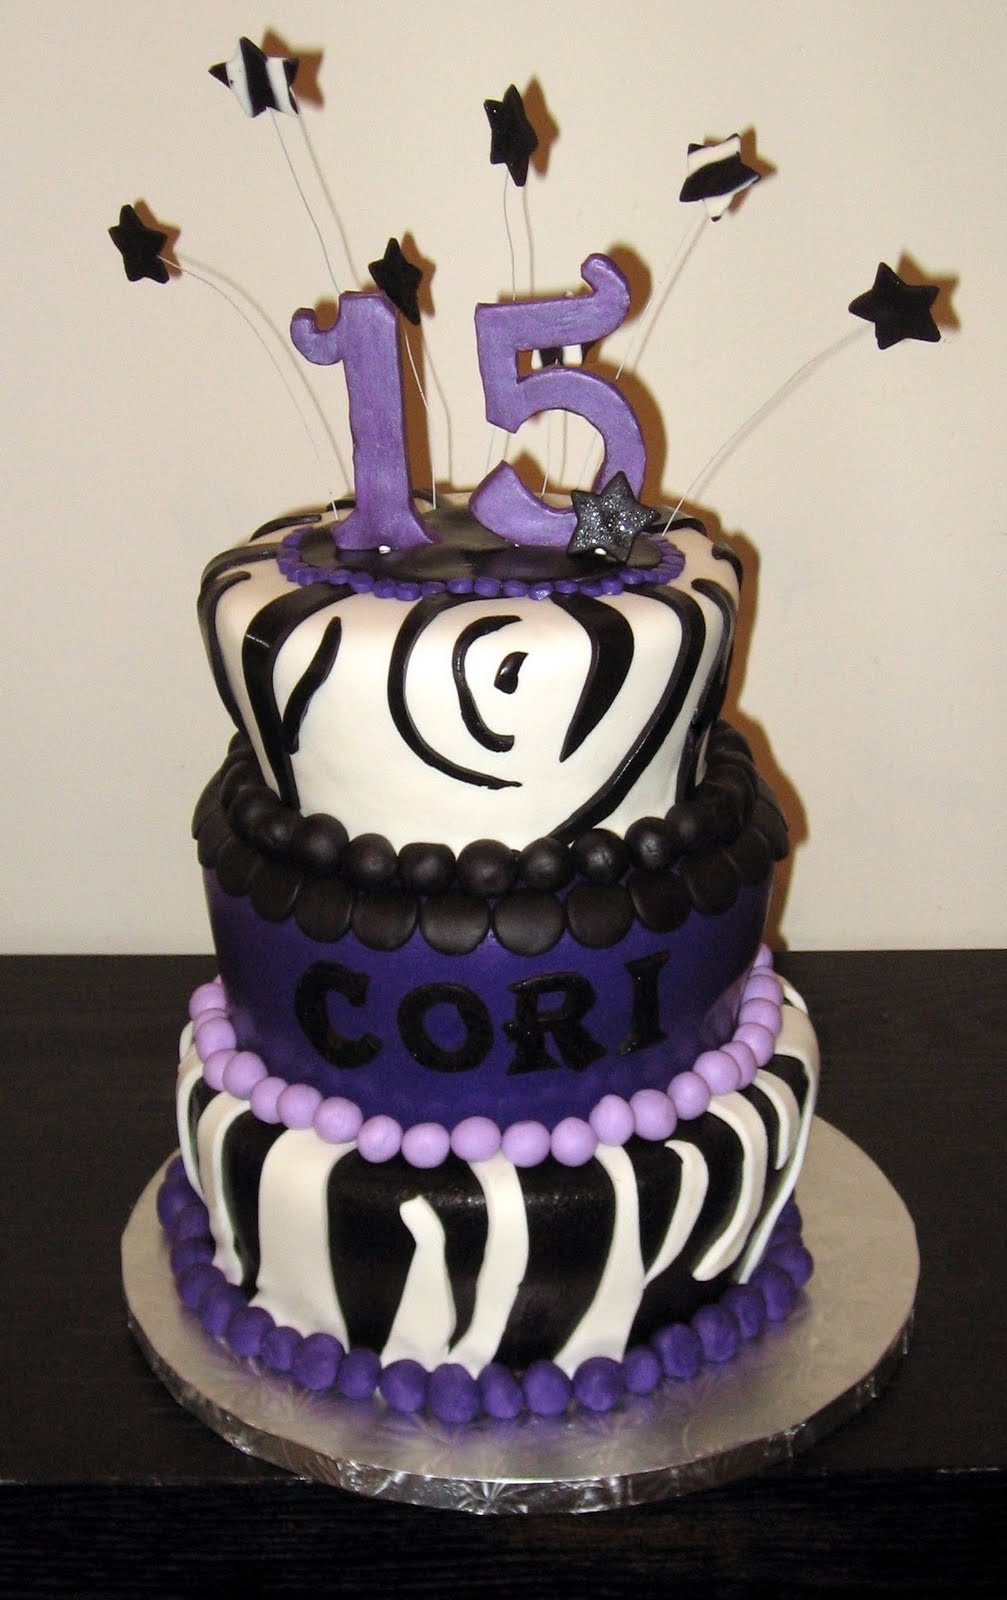 Cake Designs For 15 Year Old Boy : Seven Deadly Sweets: May 2011